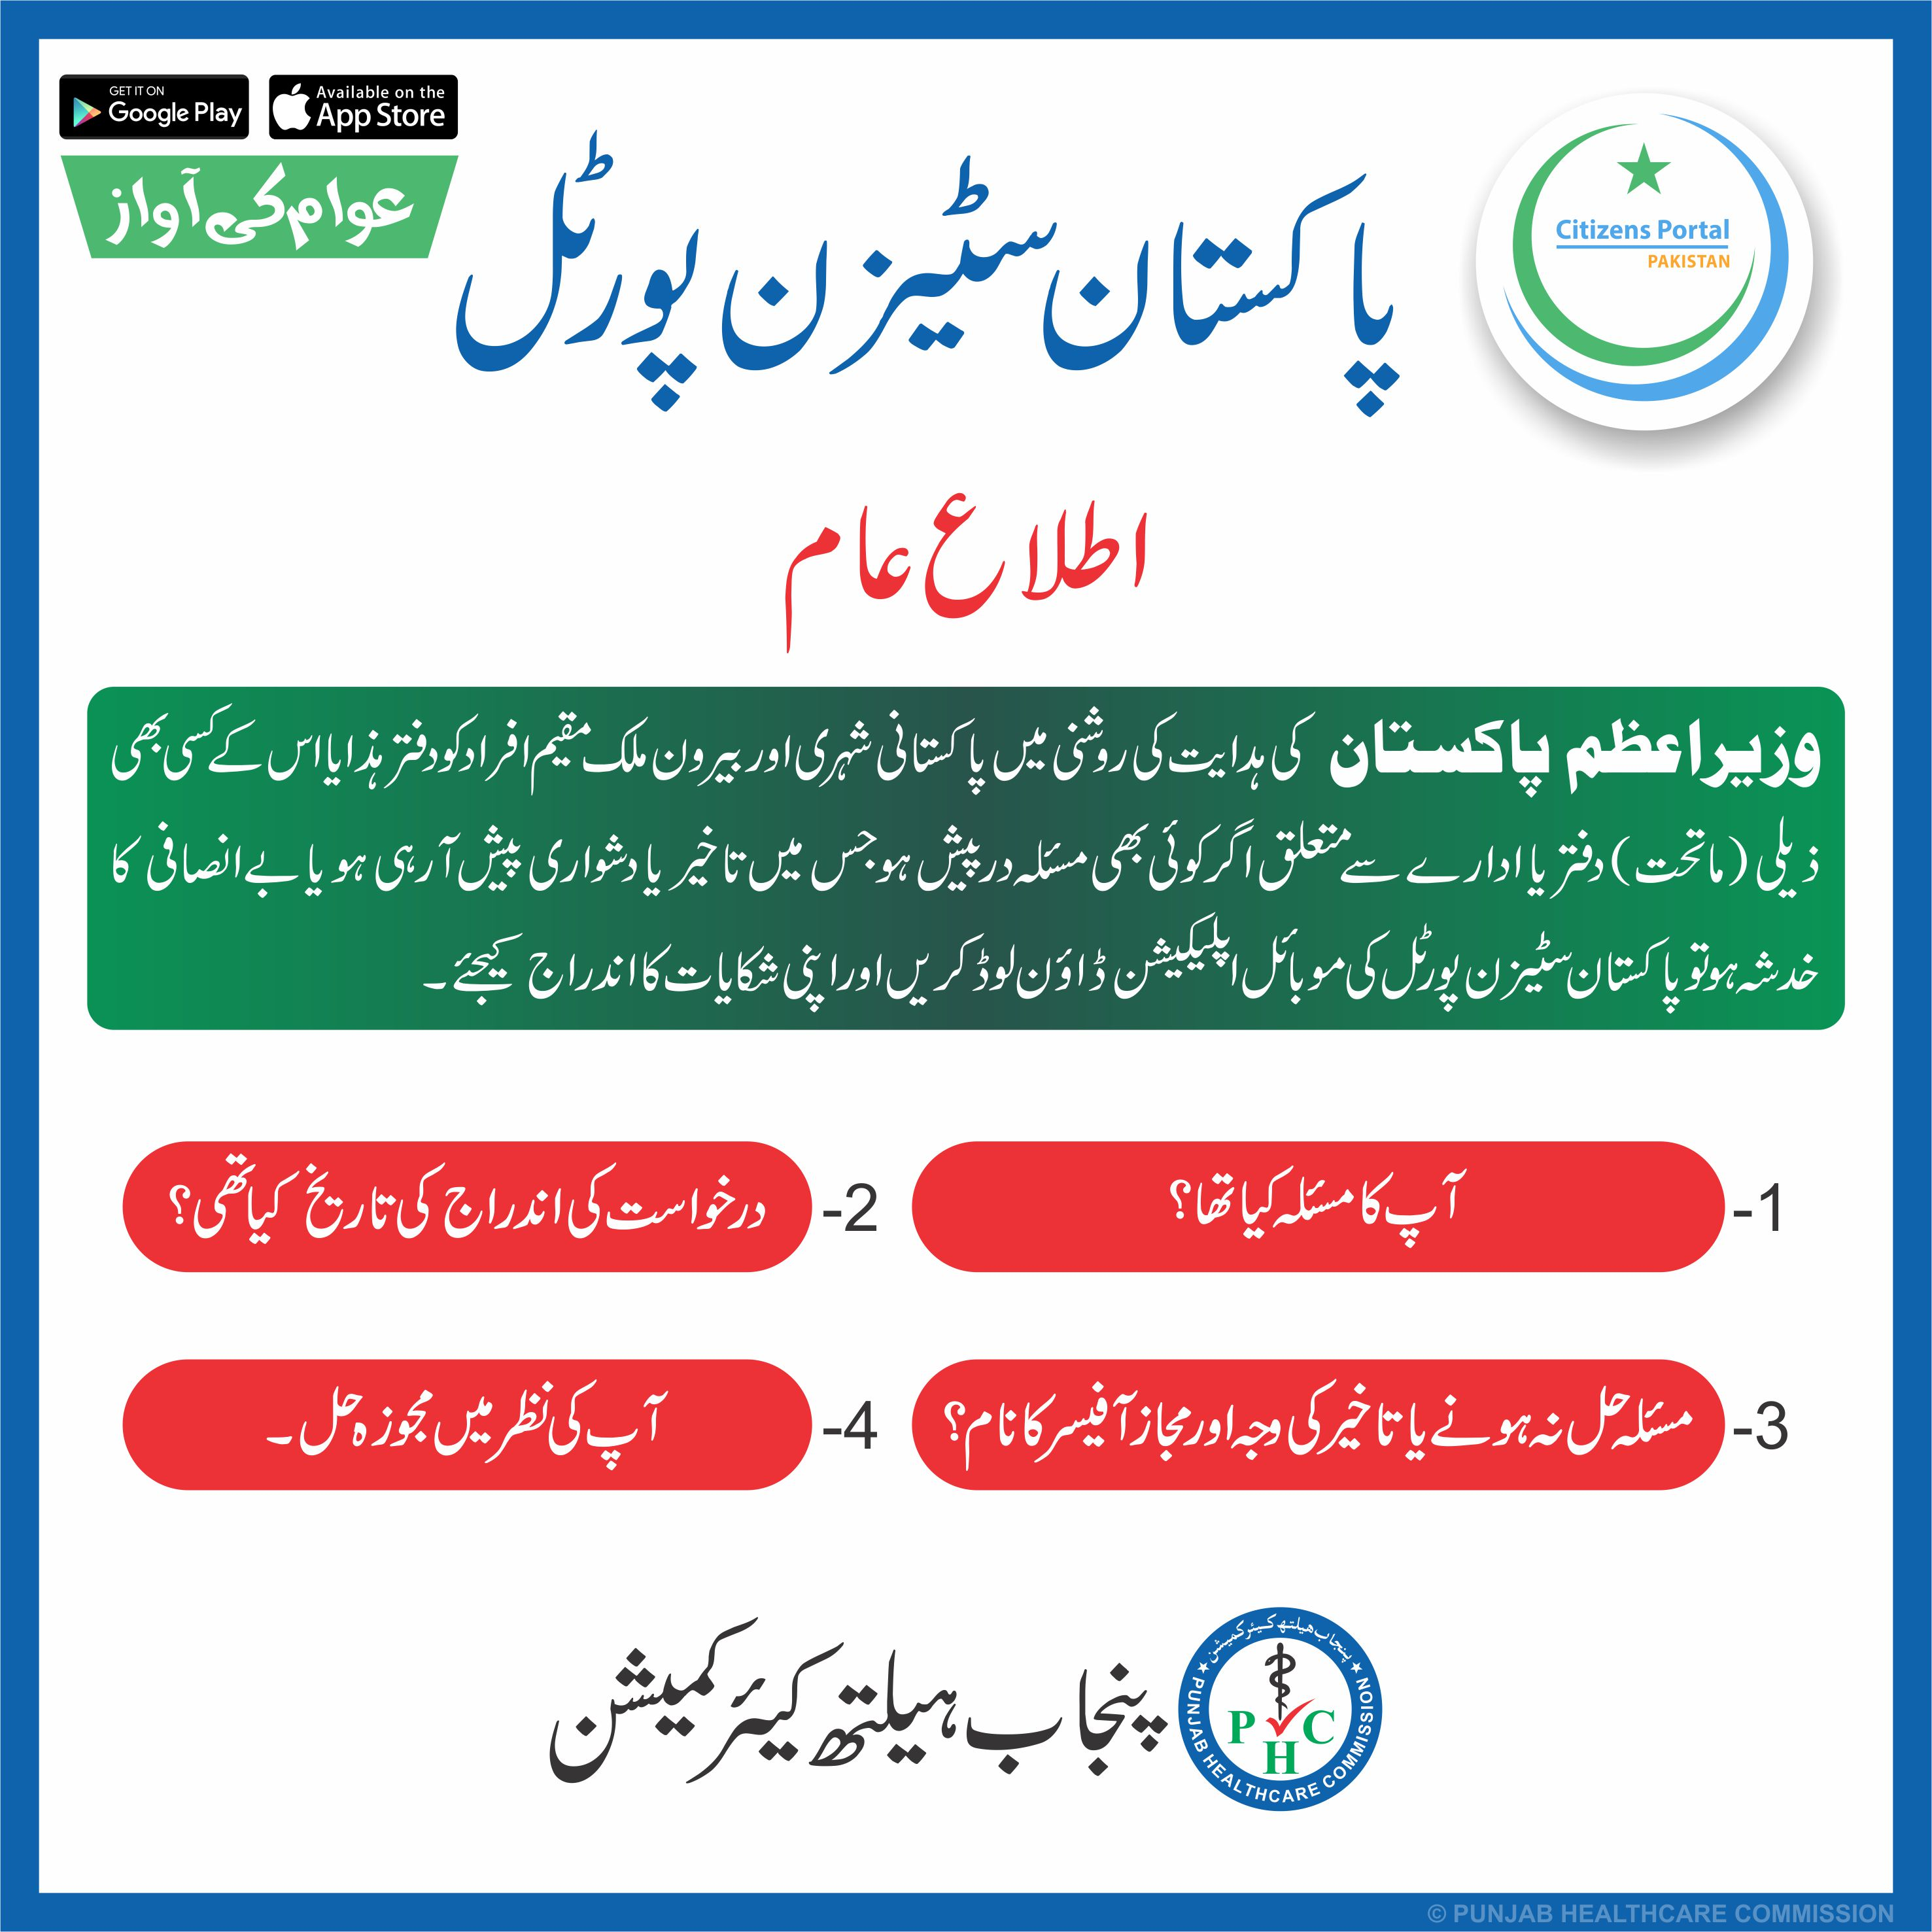 WELCOME TO : Punjab Healthcare Commission